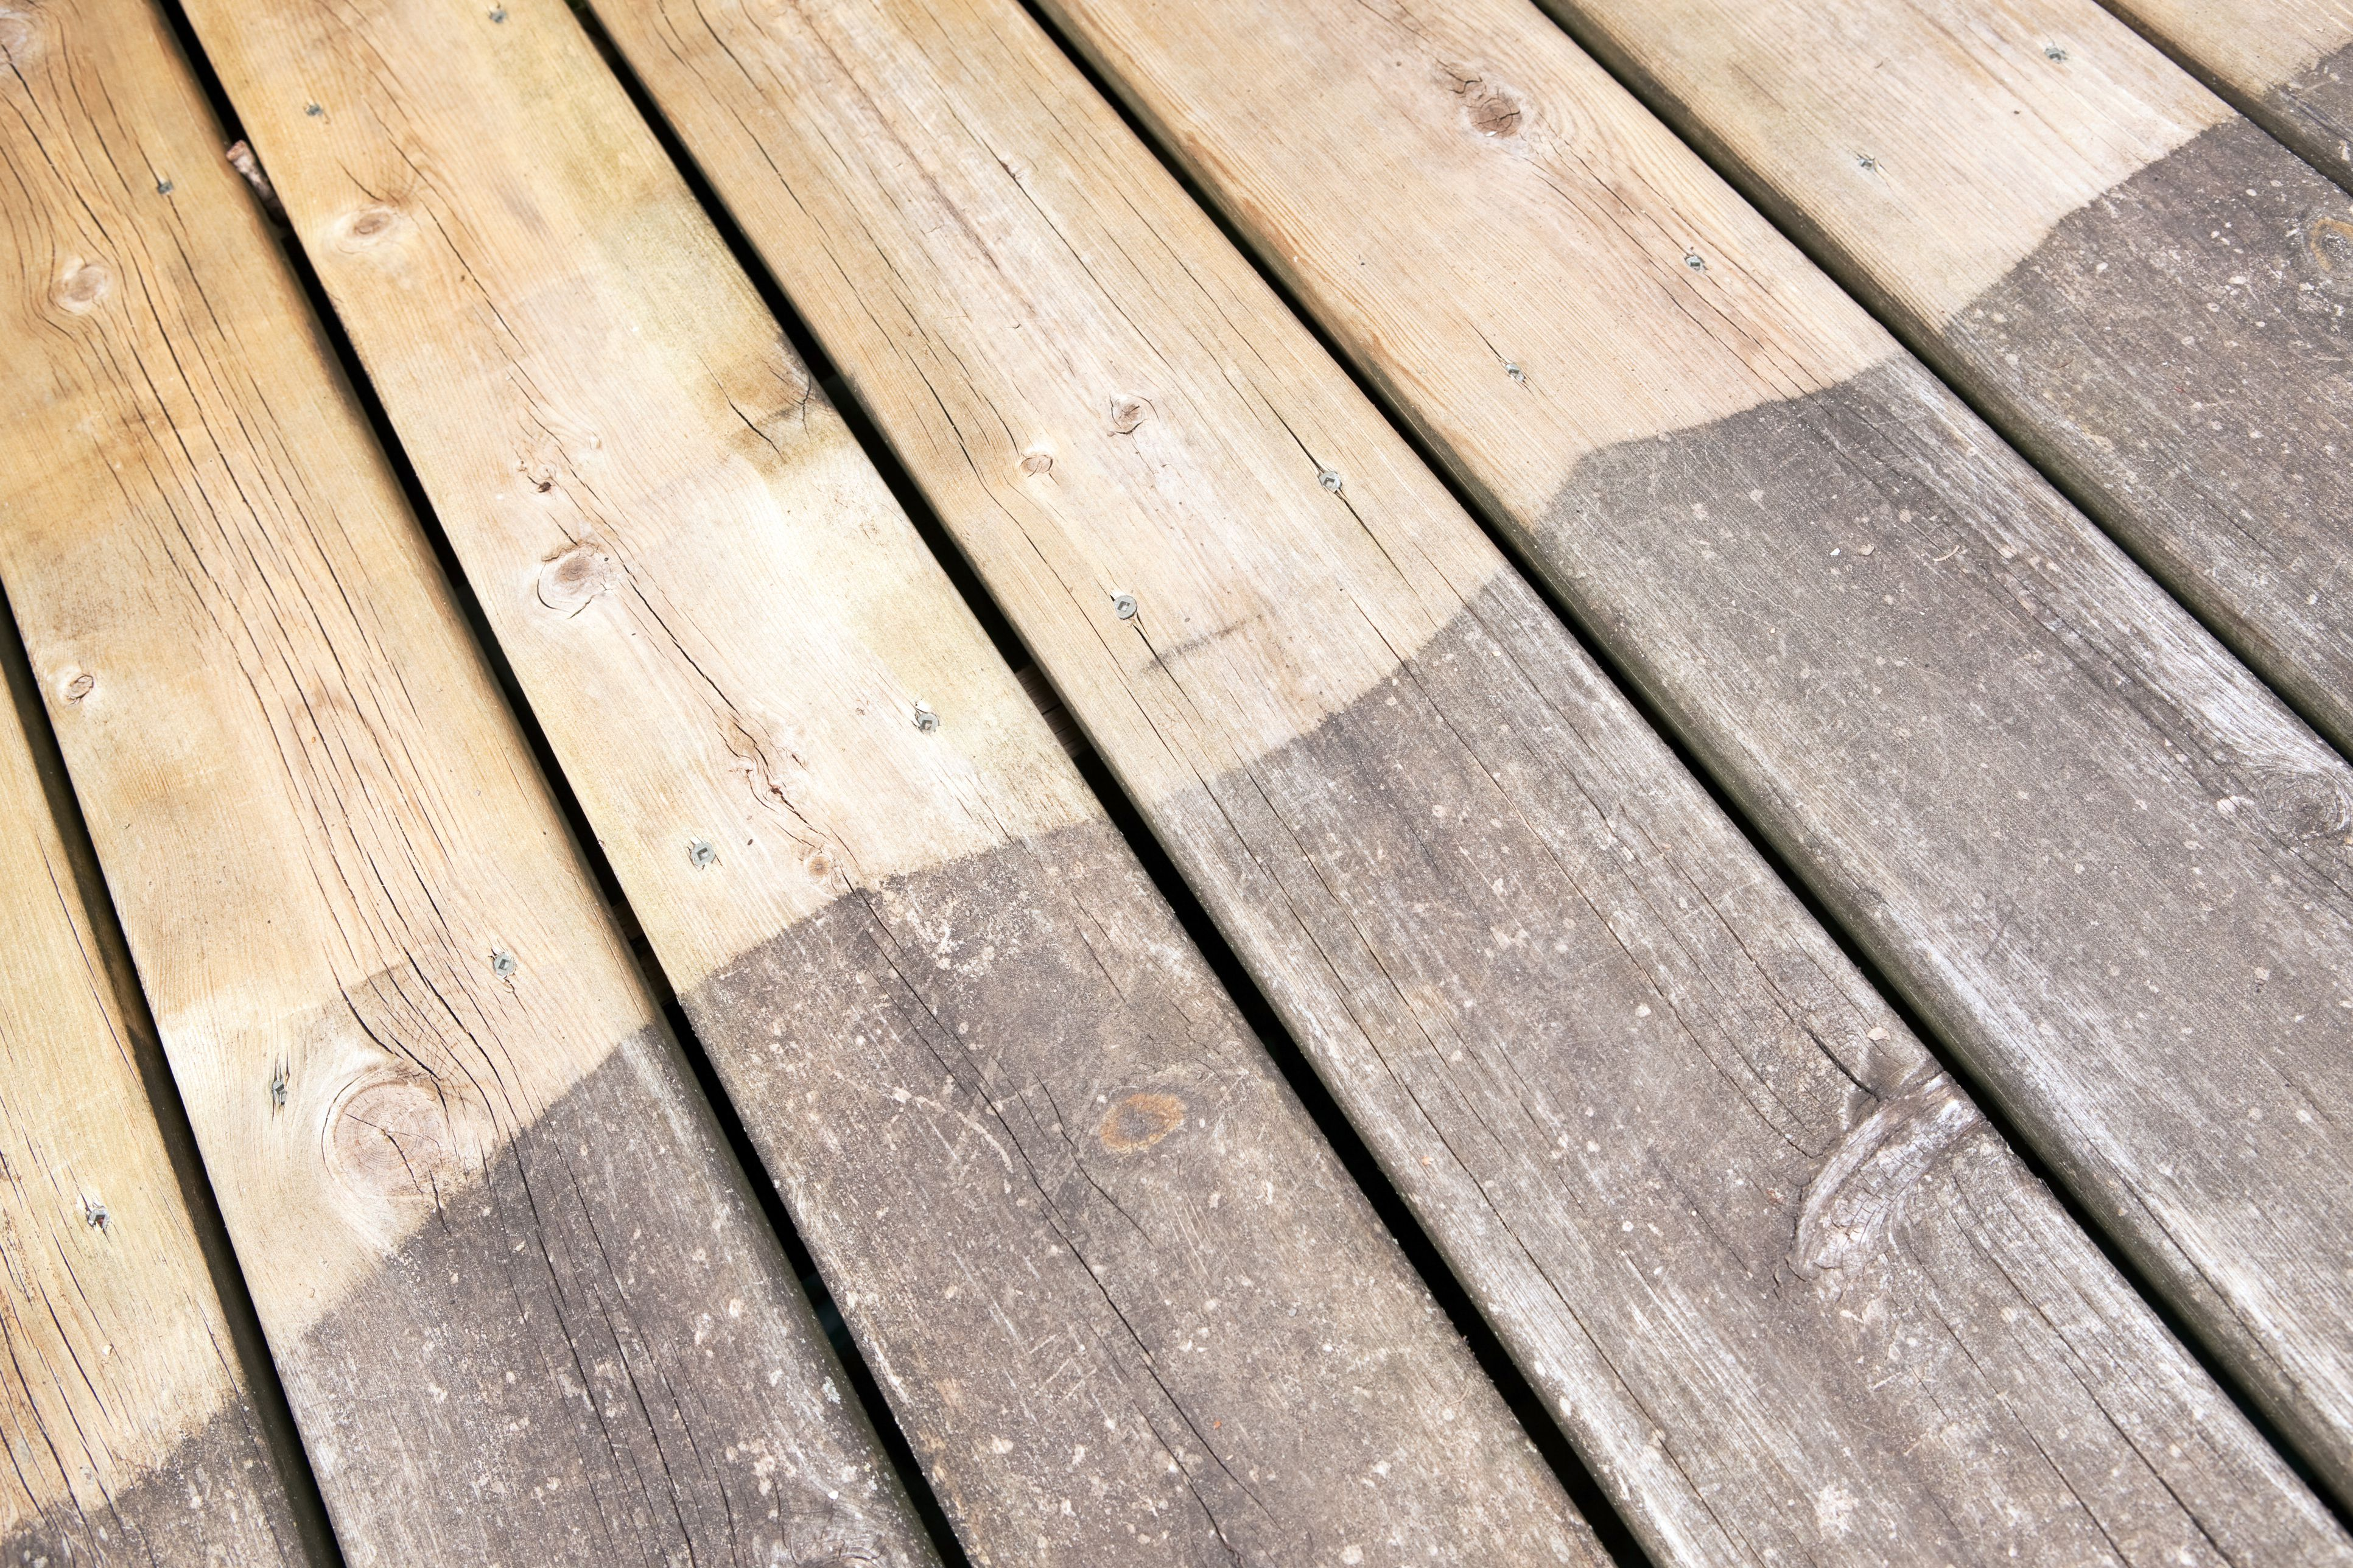 How To Pressure Wash A Wood Deck